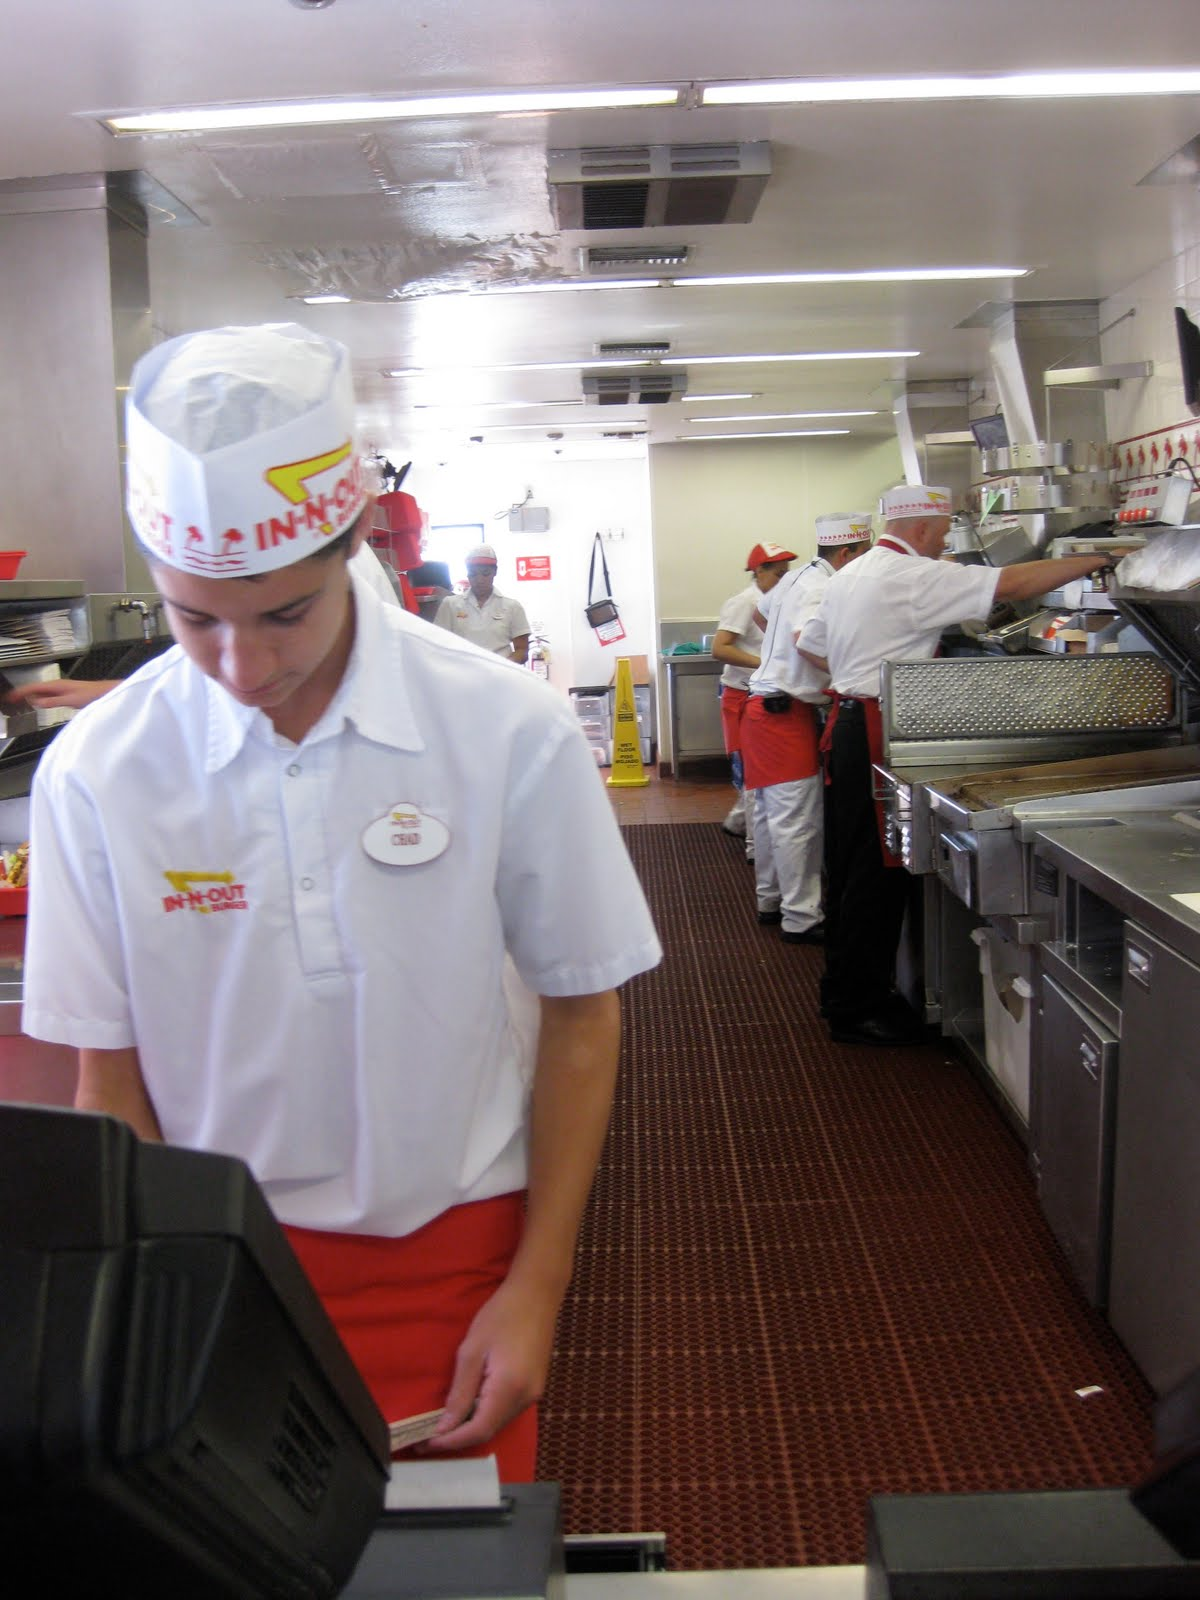 Dining With Monkeys: In-N-Out Burger